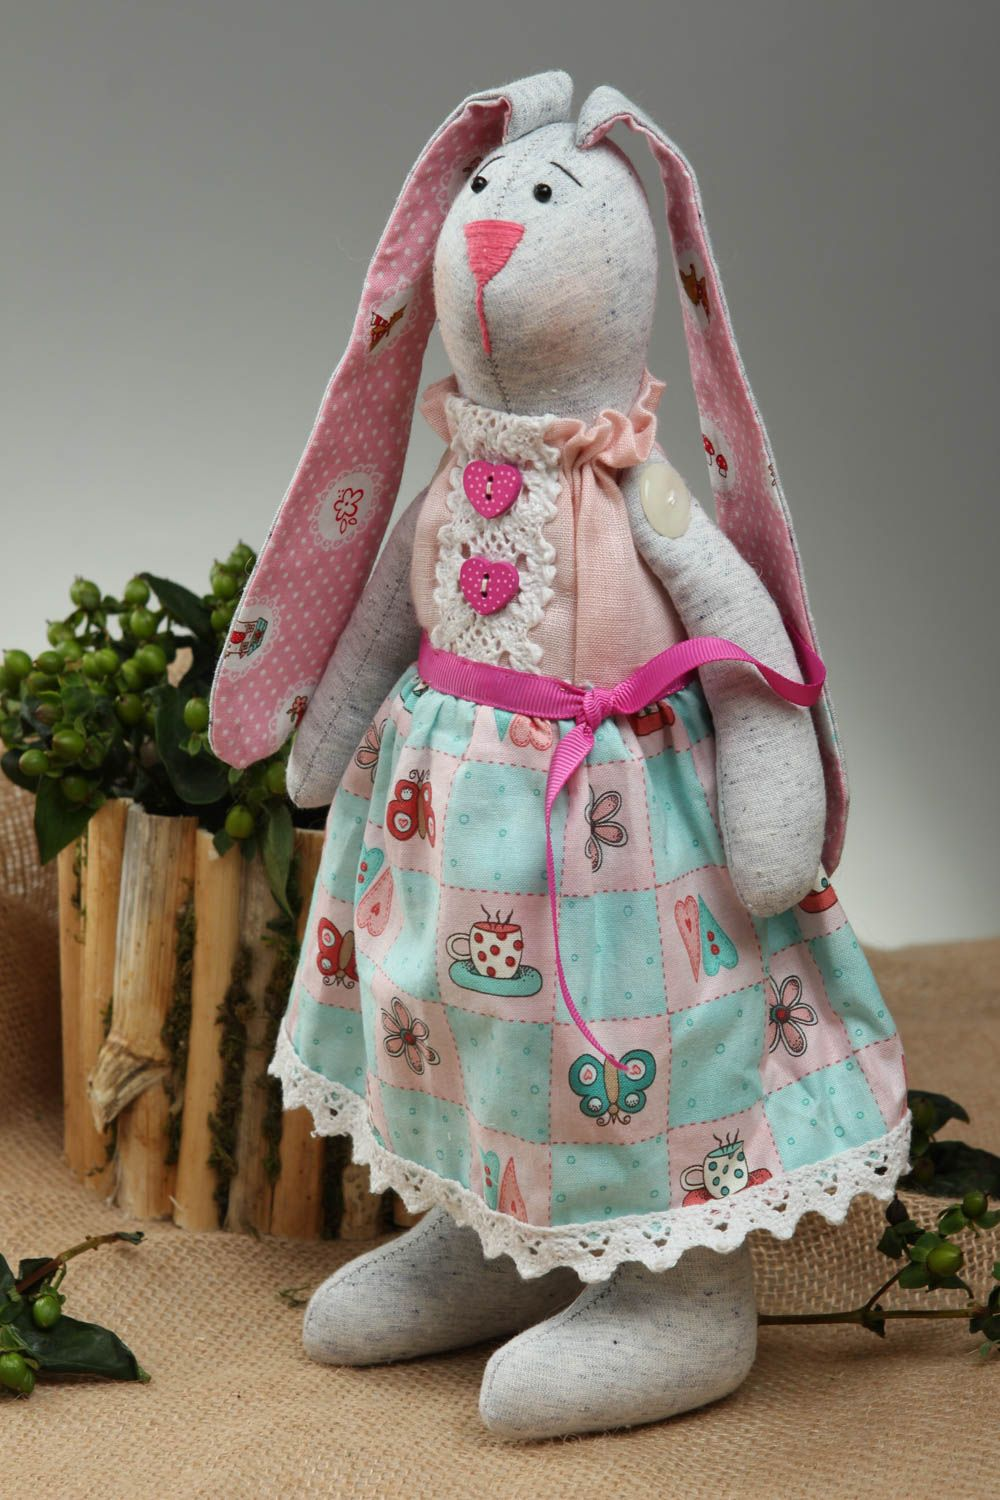 Handmade toy soft hare toy handmade hare toy fabric hare cotton toy linen toy photo 1